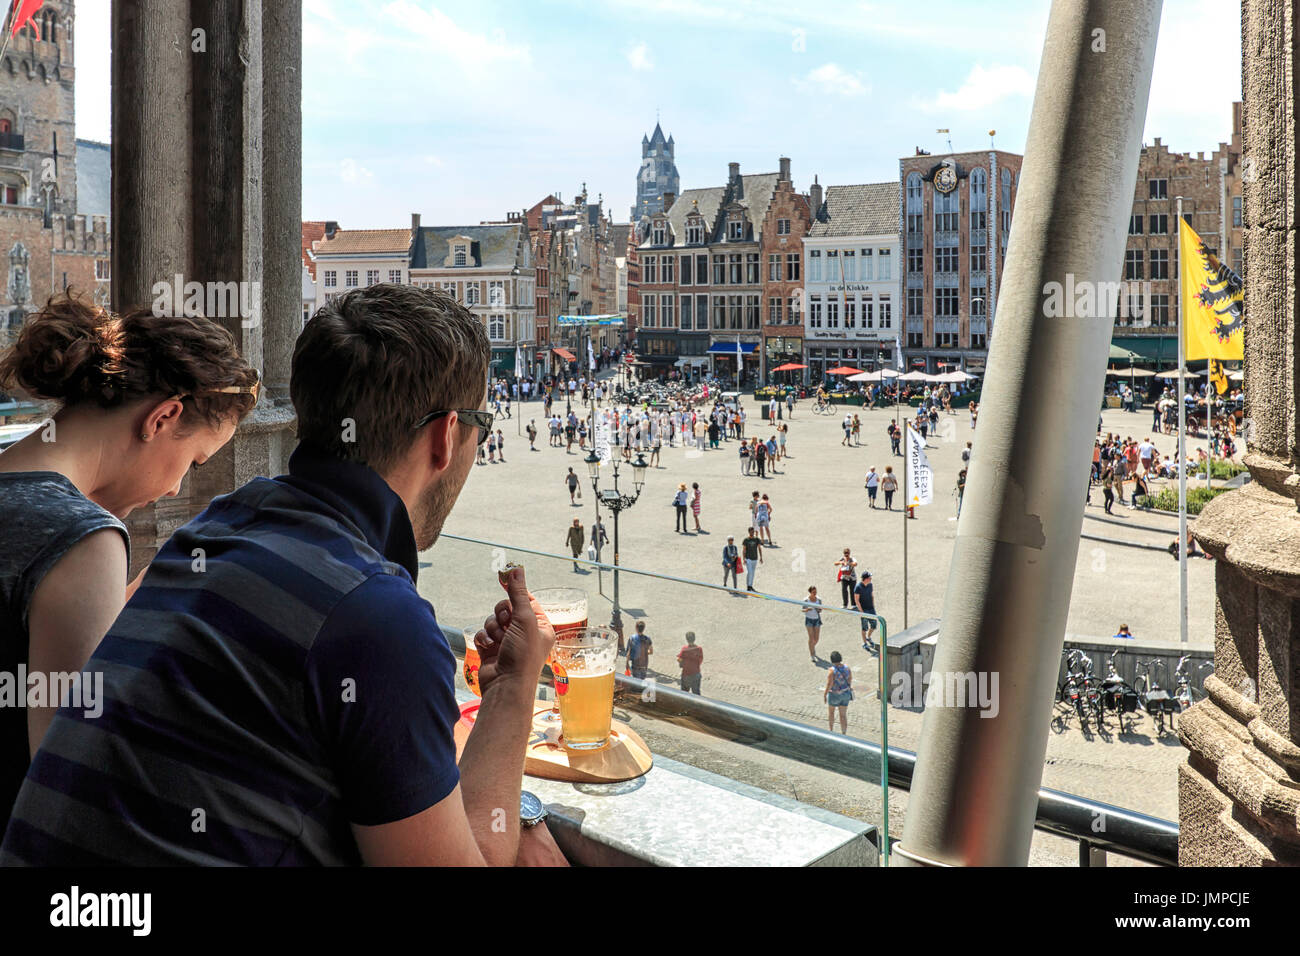 Bruges, Belgium - July 7, 2017: Tourists drinking beer and eating chocolate while enjoying the a panoramic view of the market square in the center of  - Stock Image